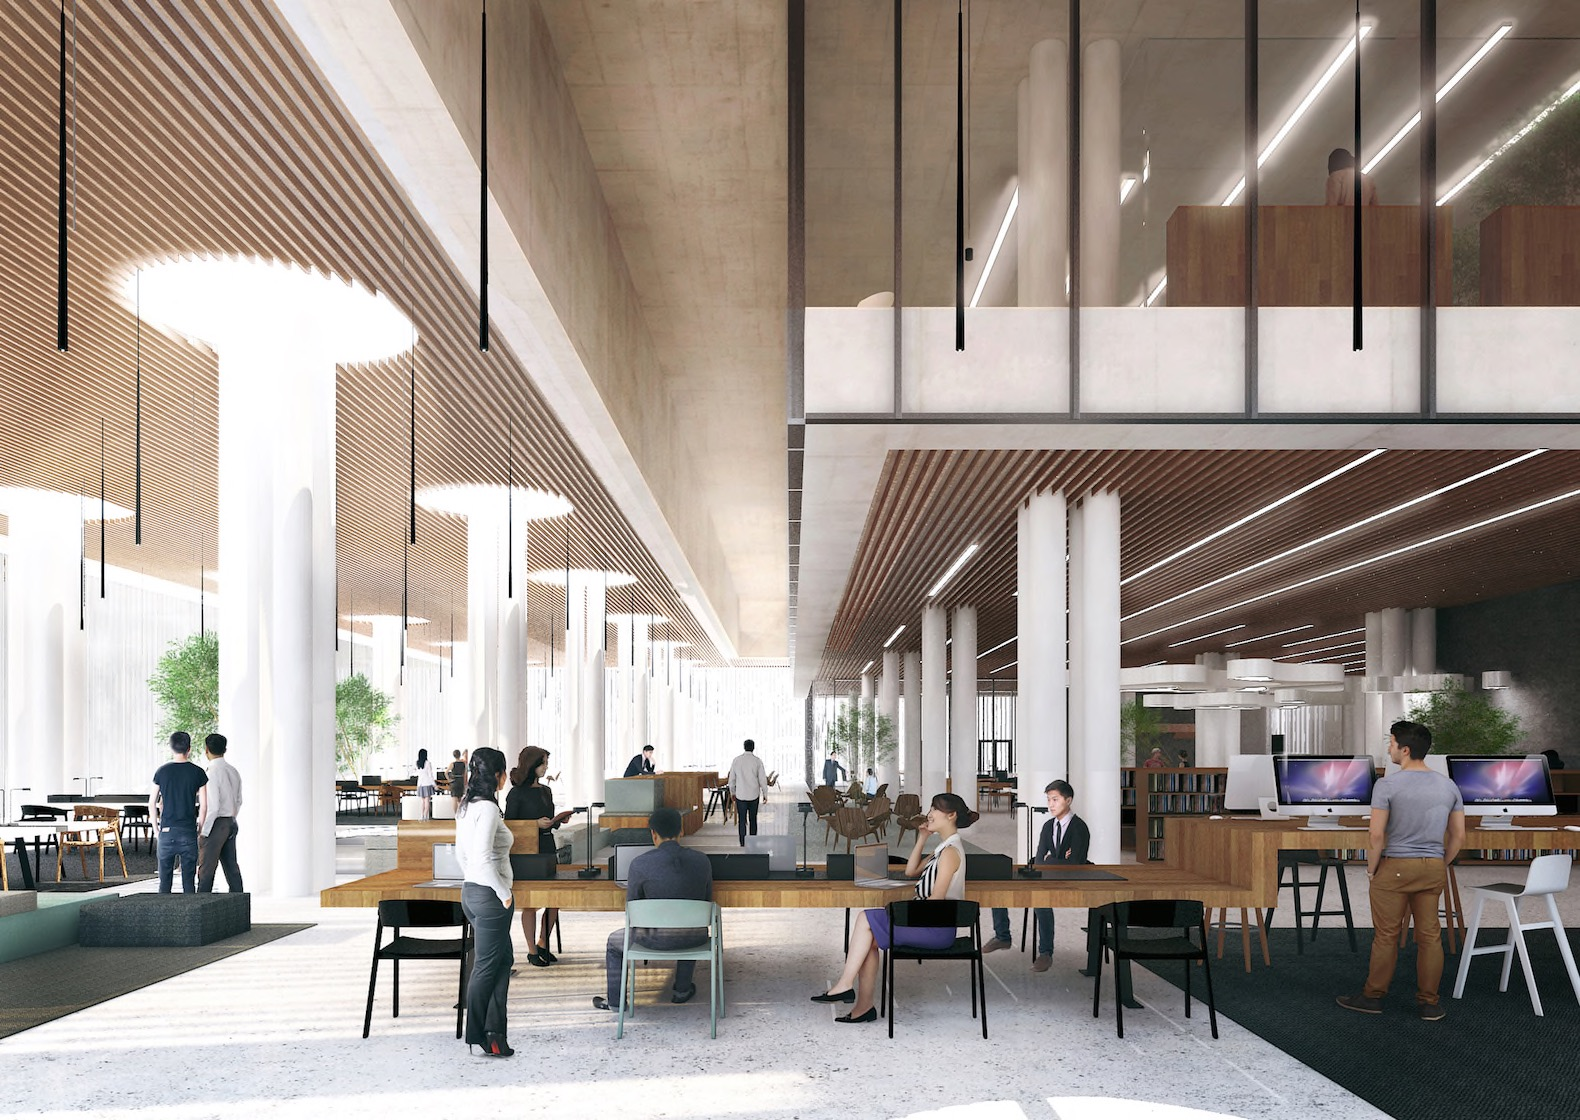 Mecanoo wins competition to design the tainan public library with